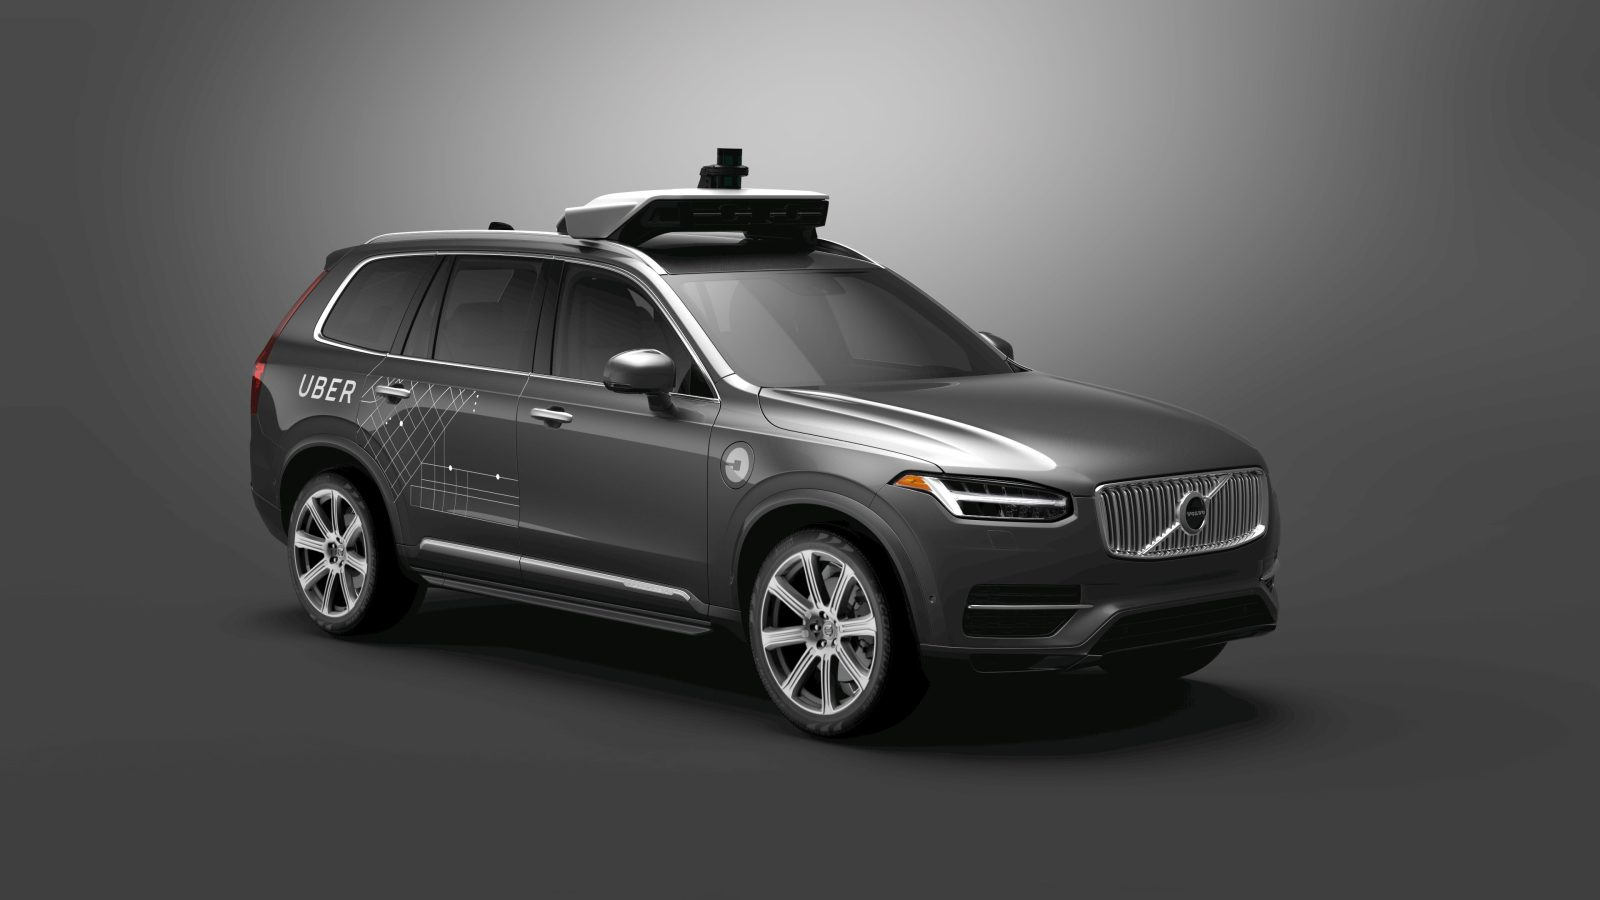 Uber Orders Whopping 24 000 Volvo Xc90 Plug In Hybrids For